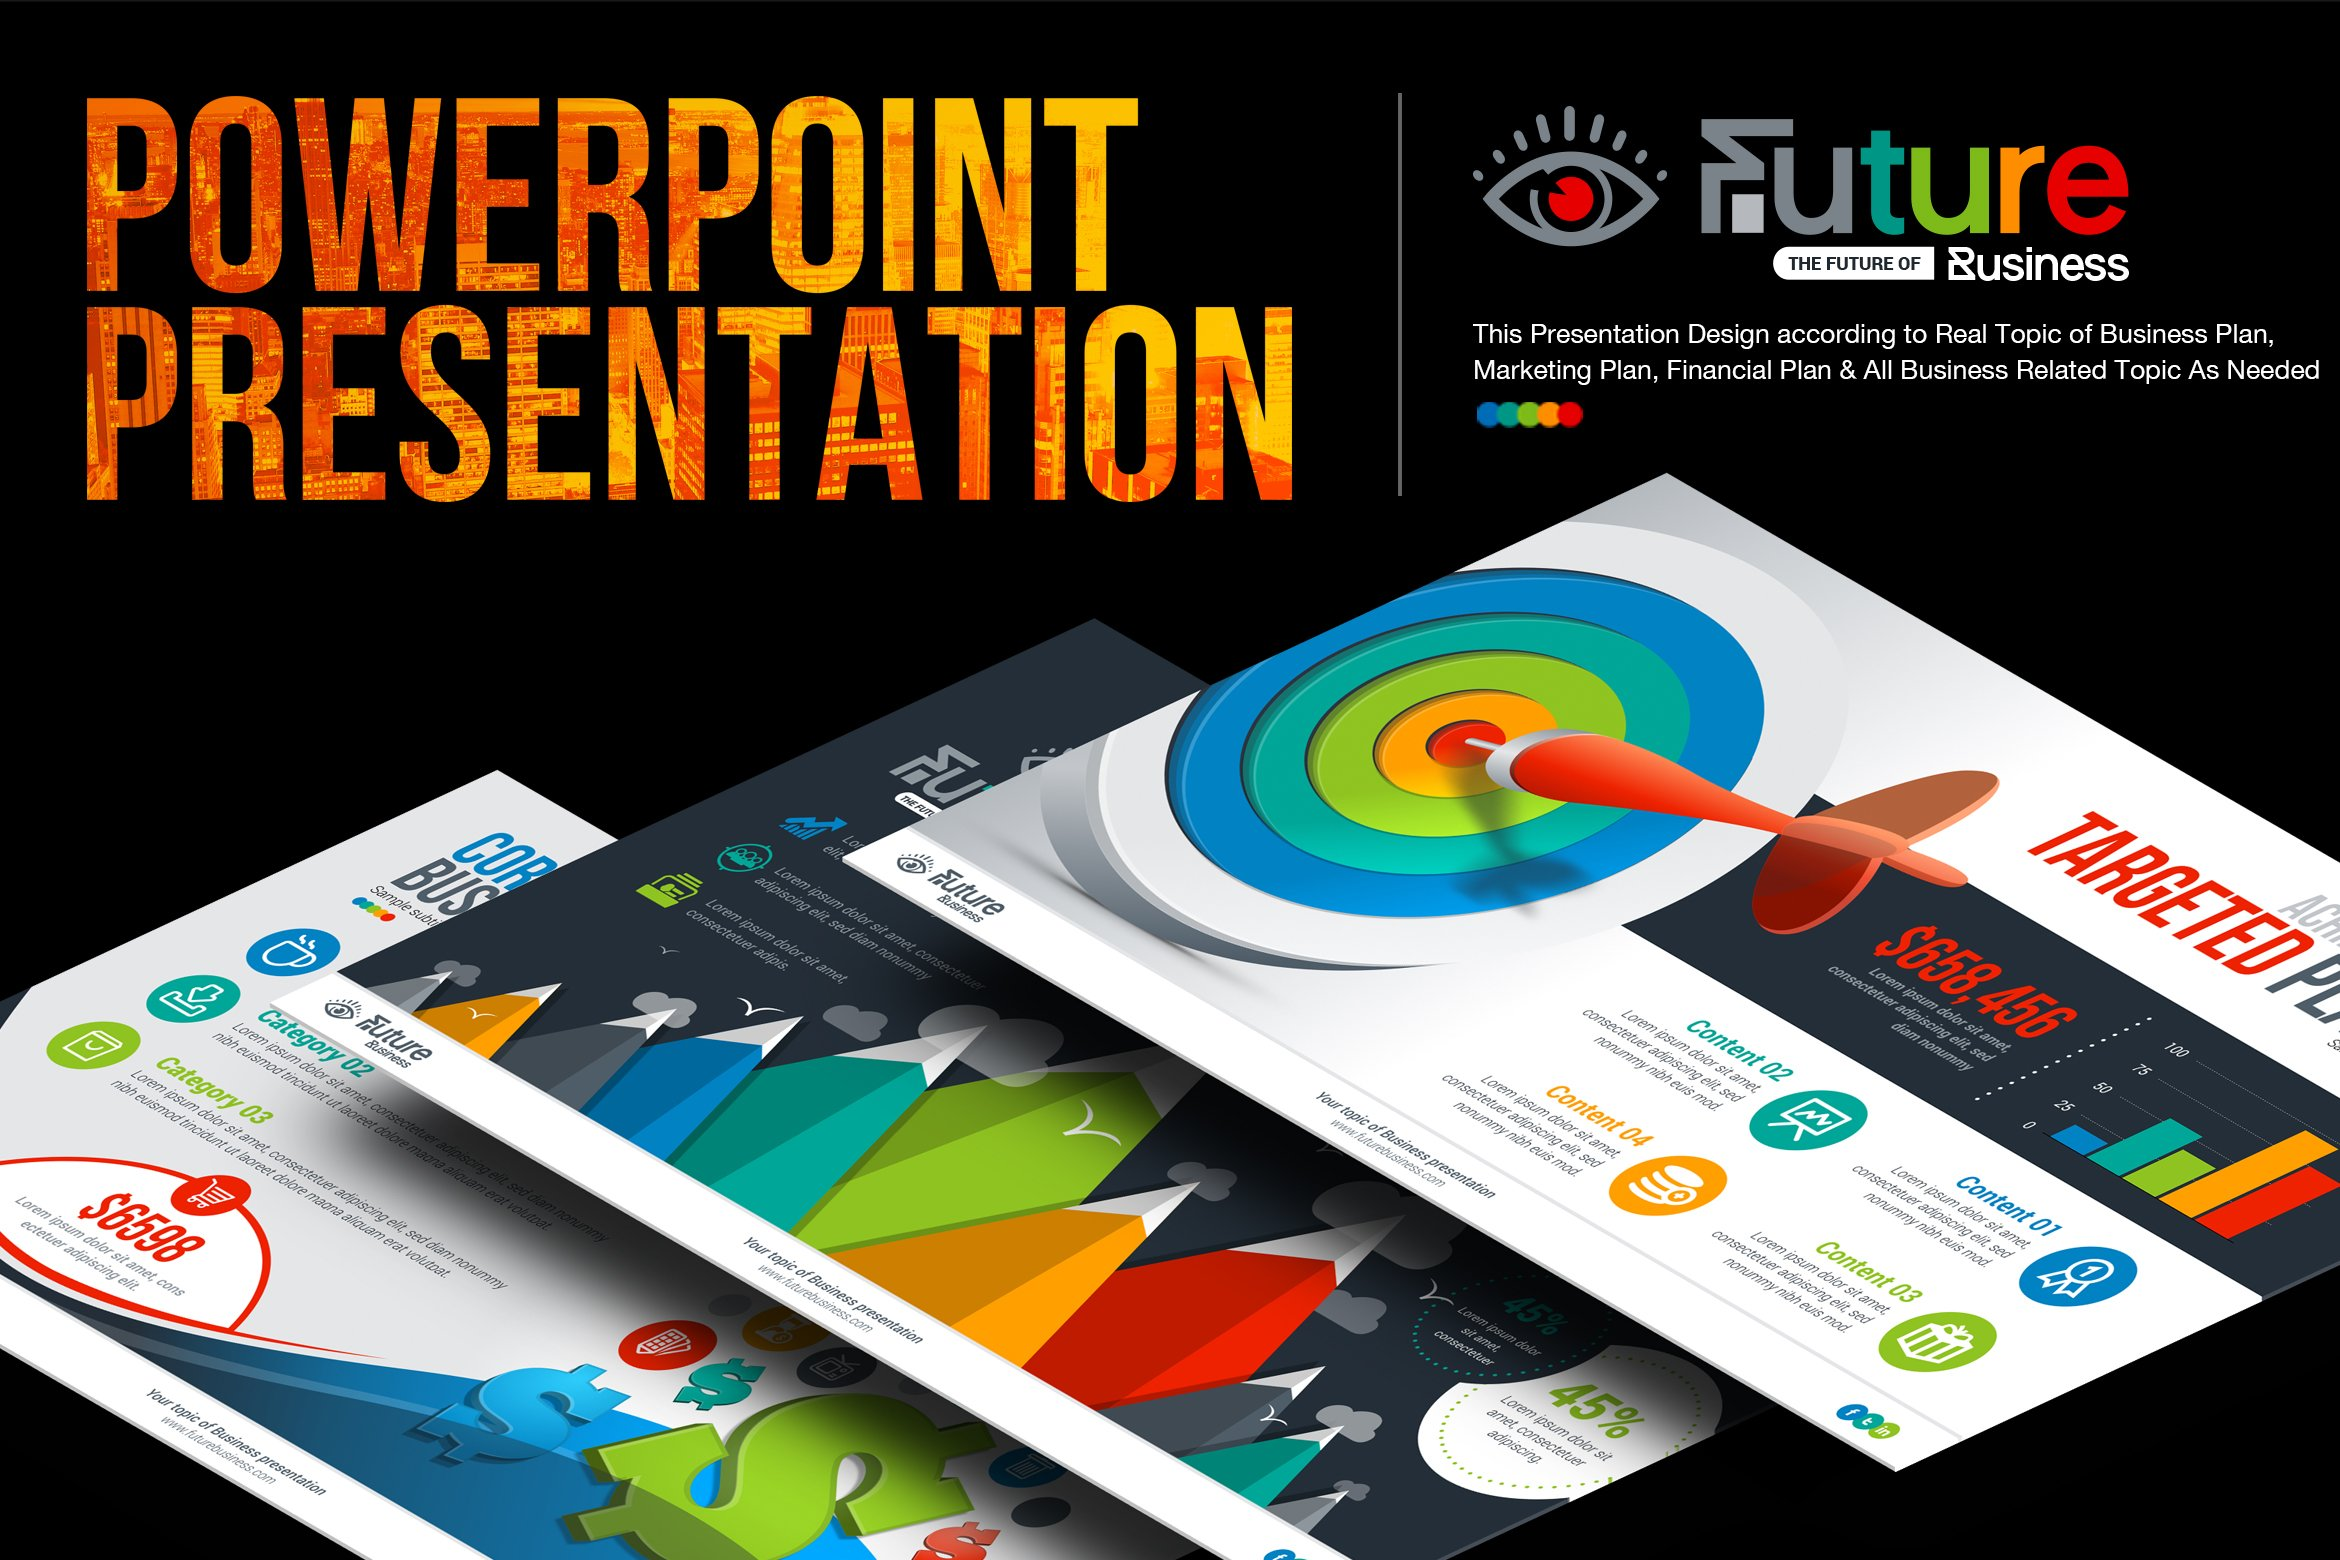 Businessplan powerpoint presentation presentation templates businessplan powerpoint presentation presentation templates creative market flashek Choice Image